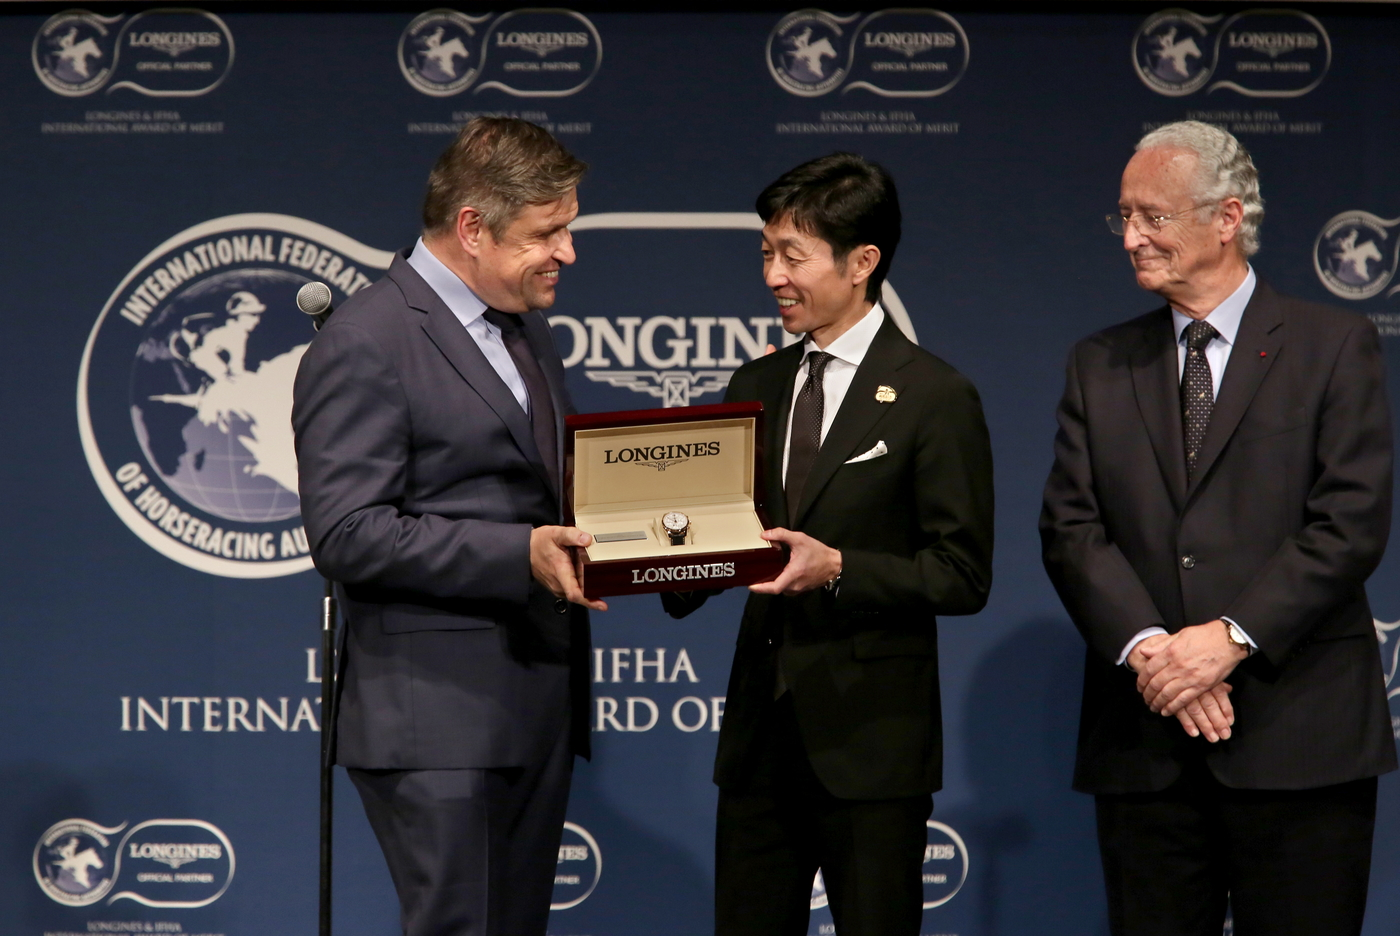 Longines Flat Racing Event: Yutaka Take Receives the 2017 Longines and IFHA International Award of Merit 6